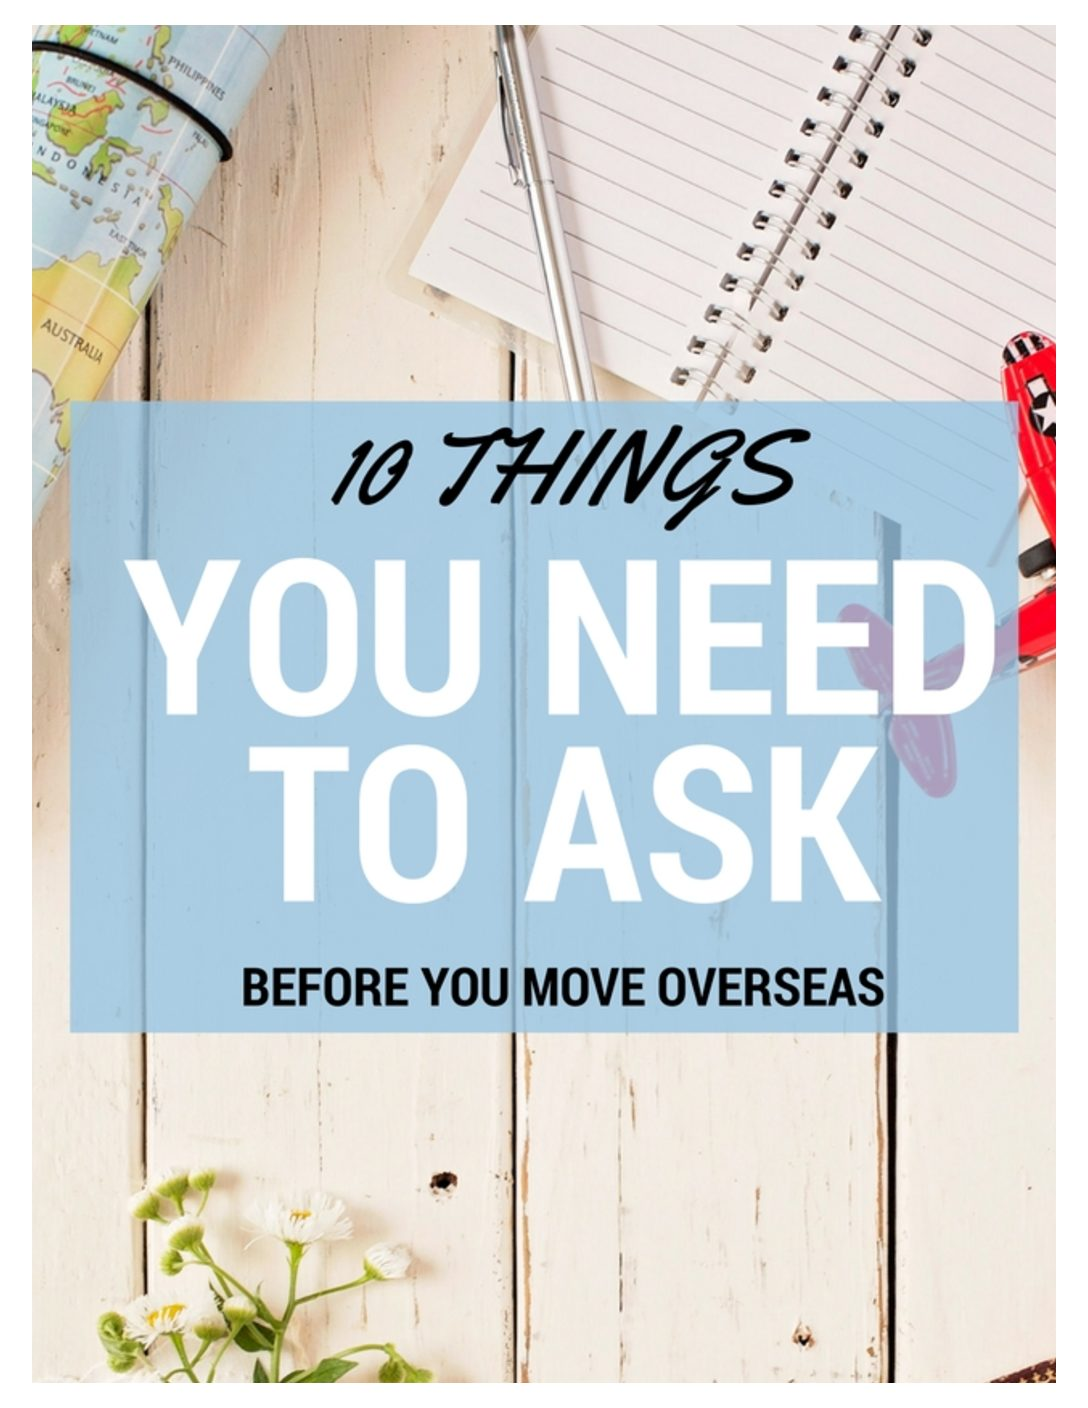 10 Things You Need to Ask Before Moving Overseas